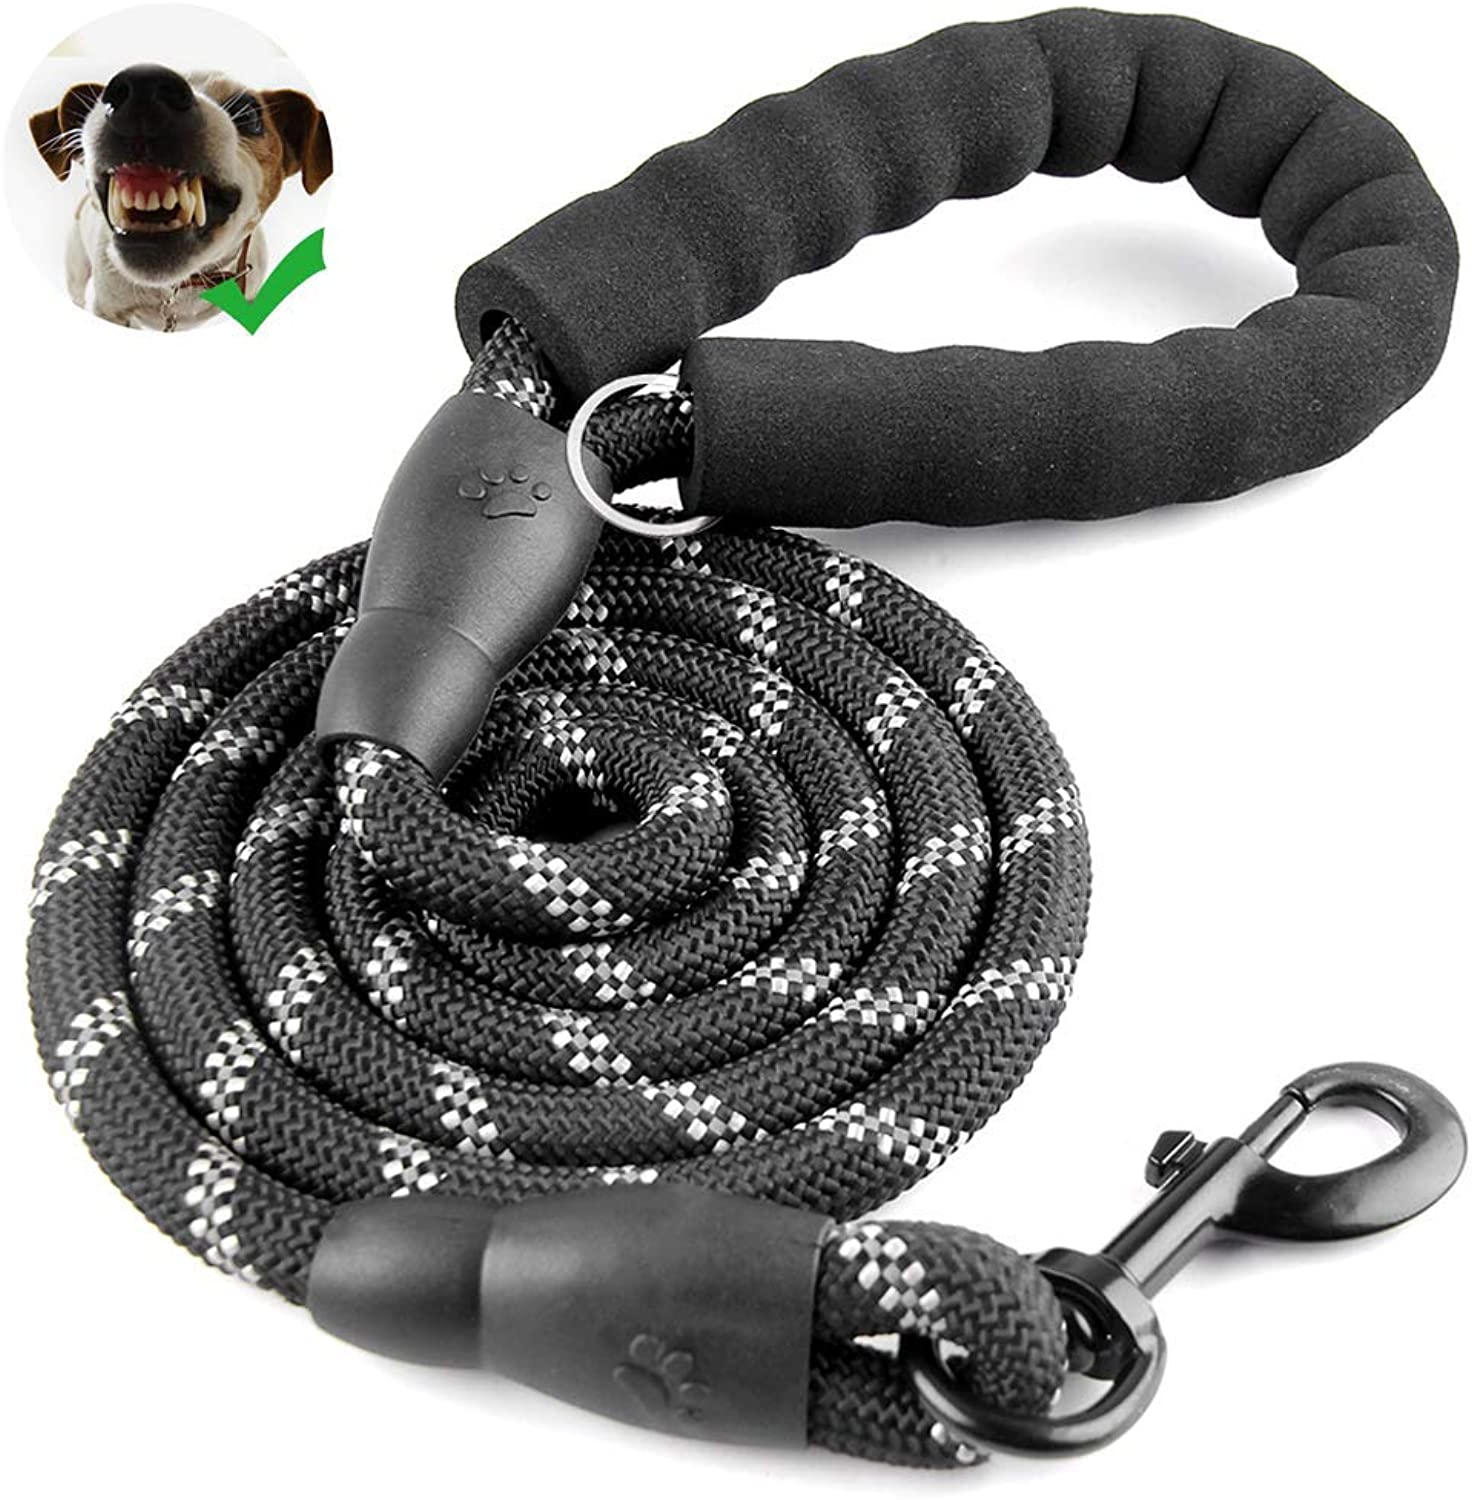 Liansheng Strong Dog Leash 5 Ft  Pet Traction Rope with Adjustable Dog Car Harness Connector Strap